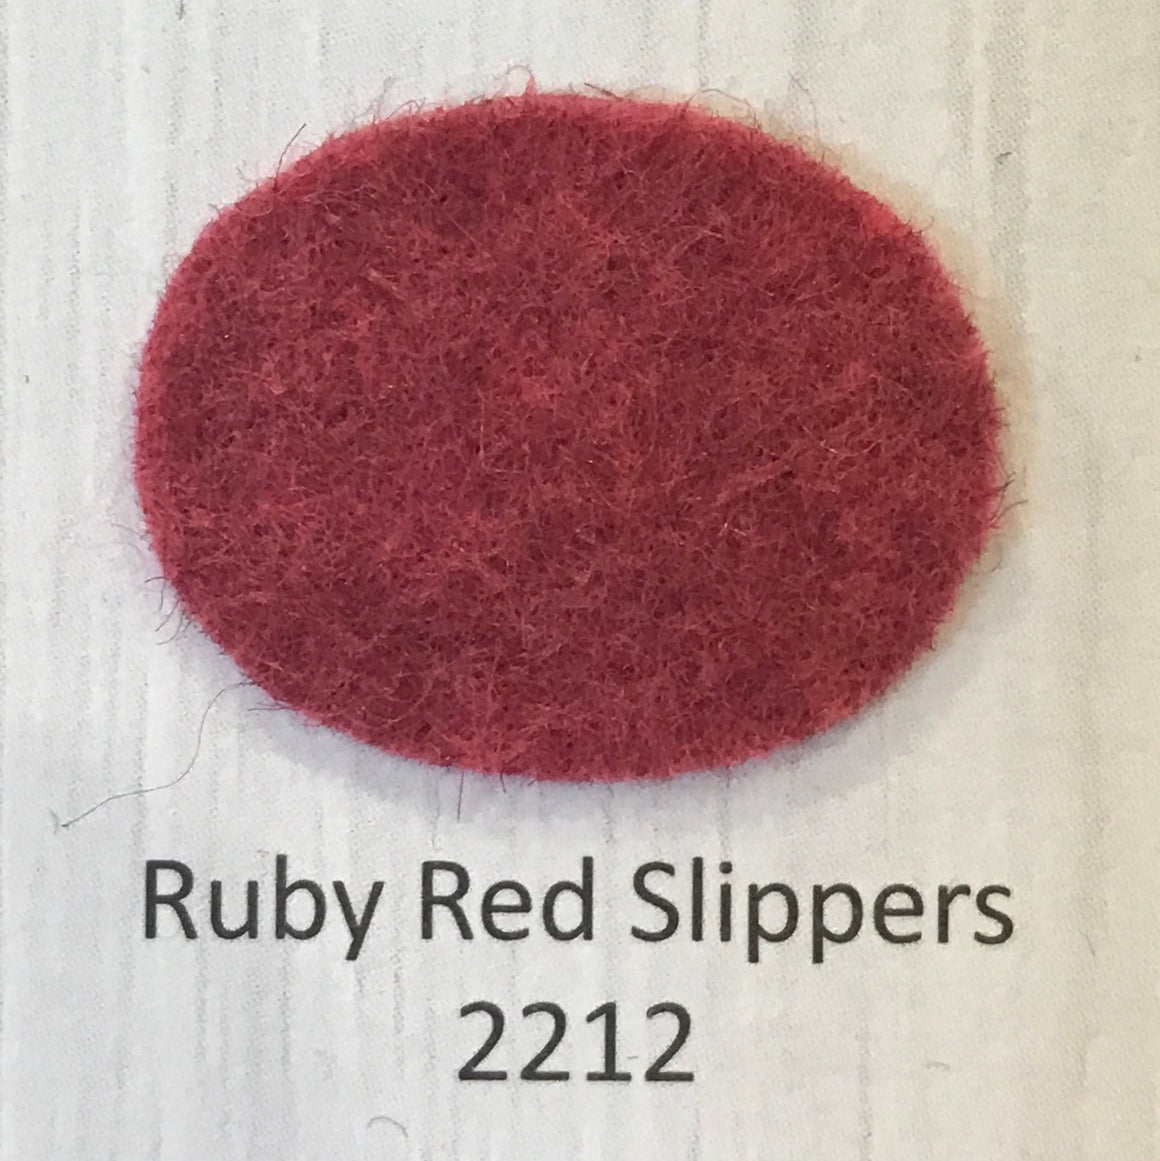 Ruby Red Slippers - 2212